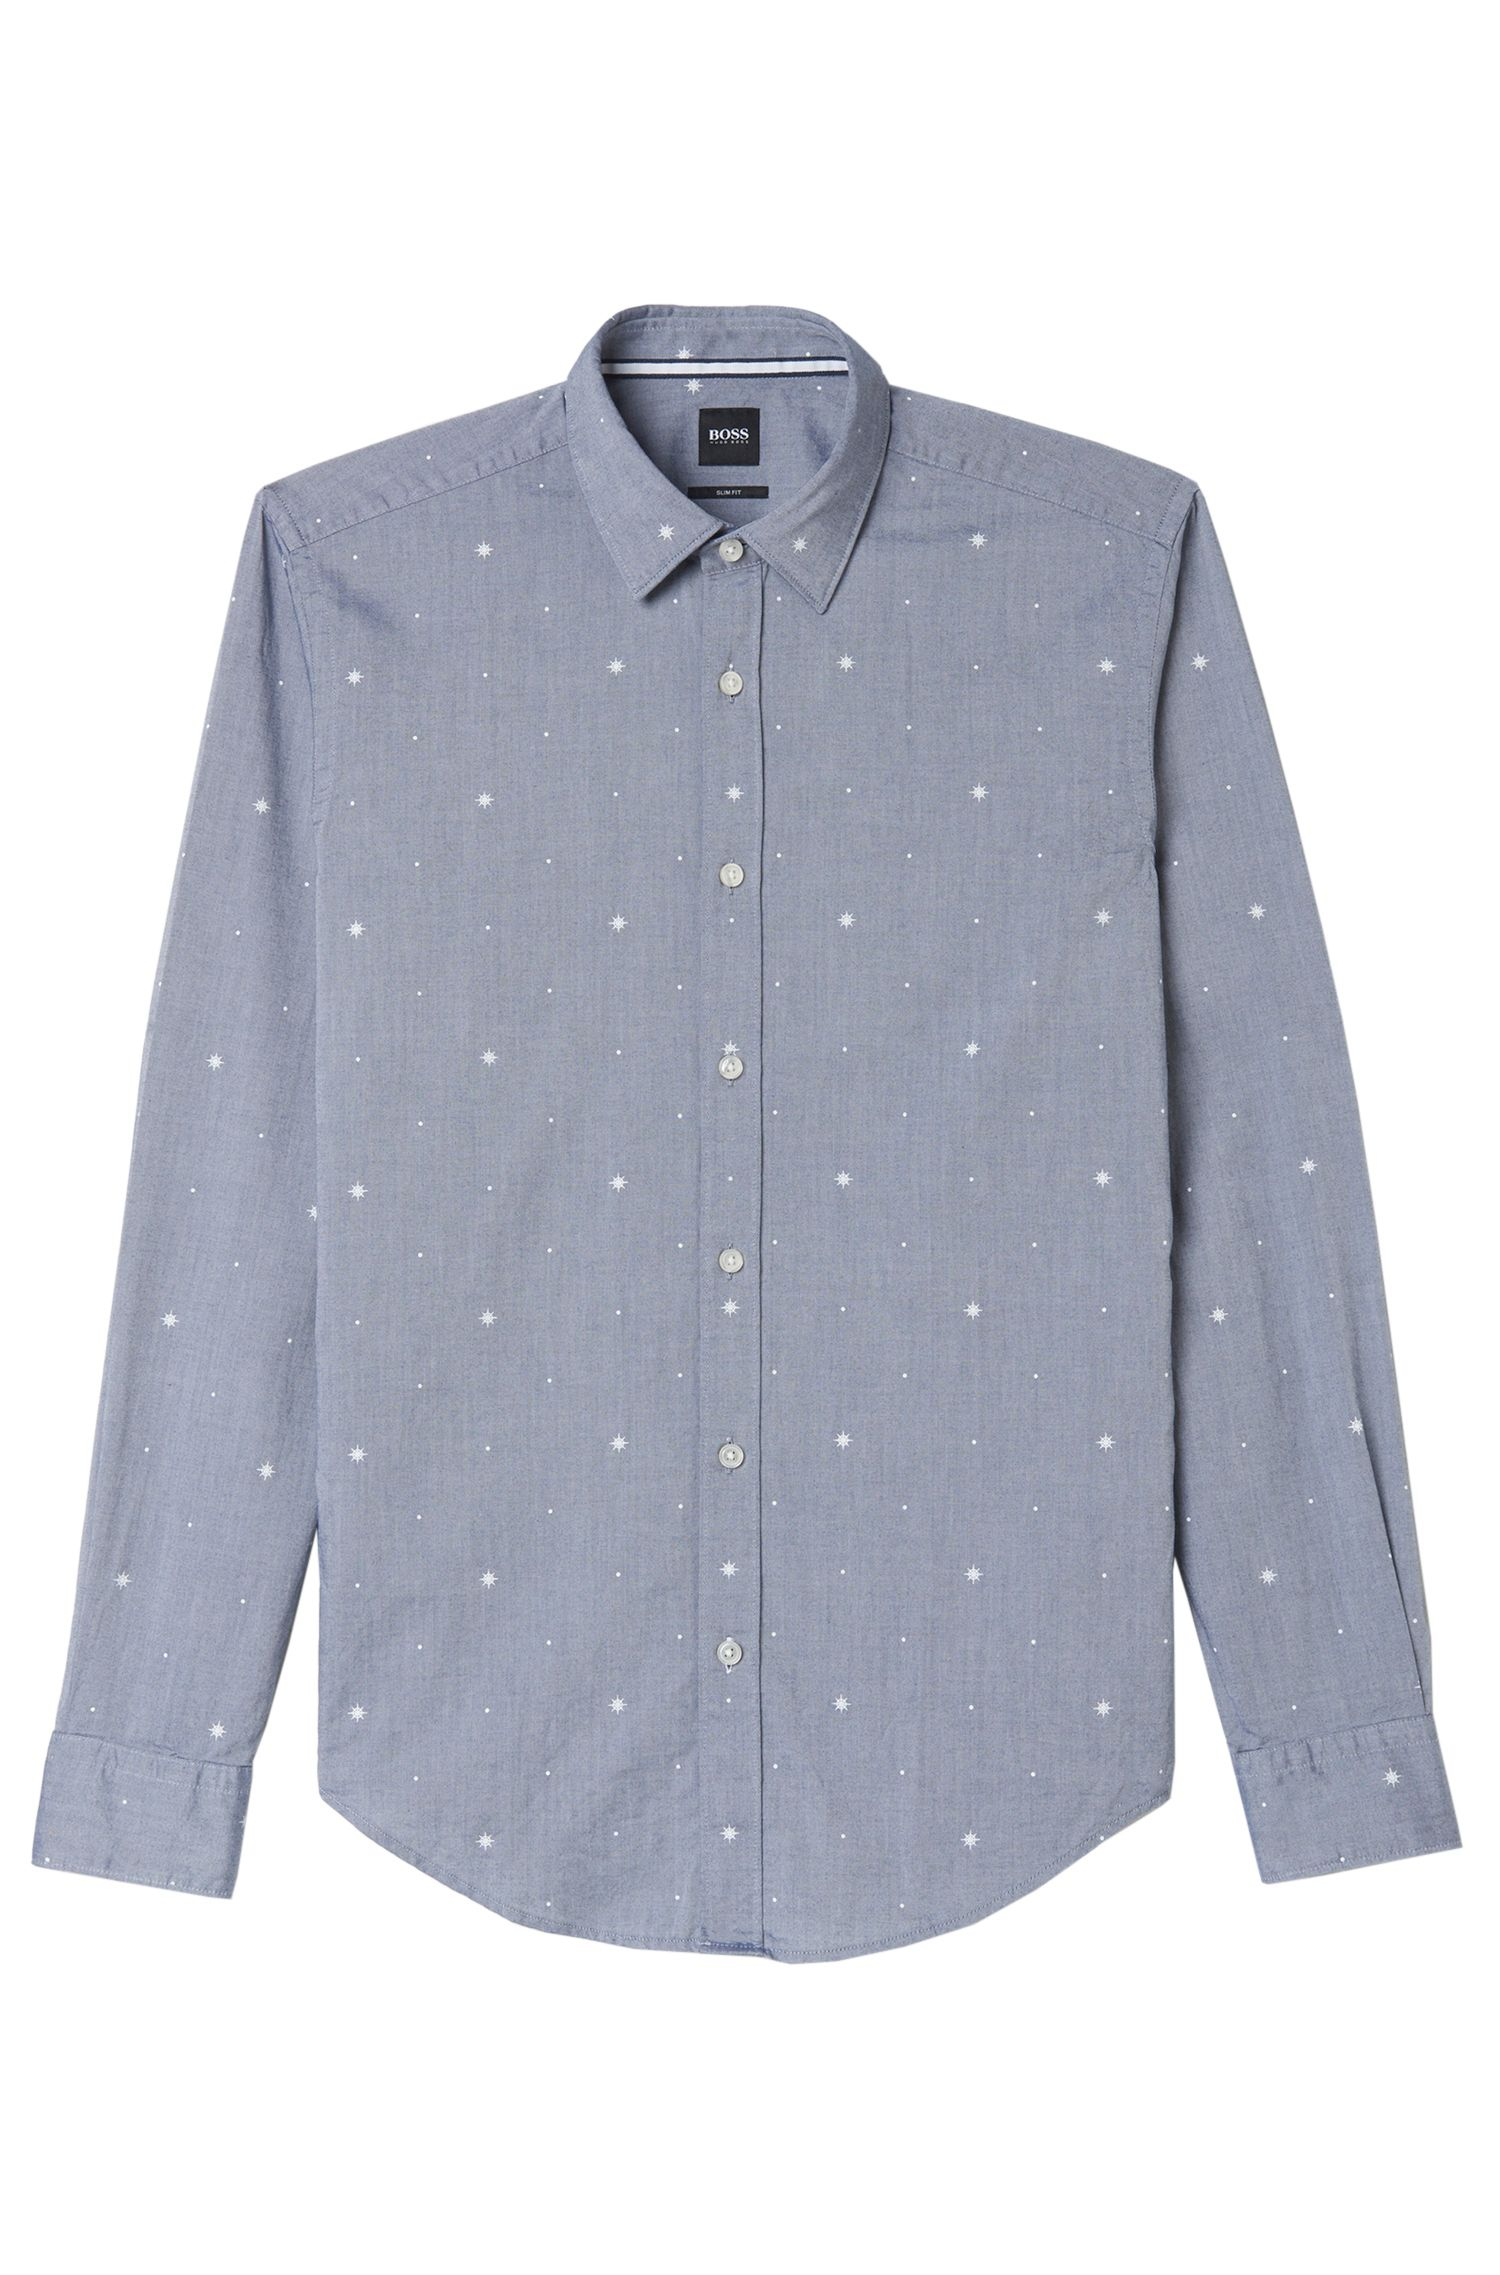 Fil Coupé Cotton Dress Shirt, Slim Fit | Ronni